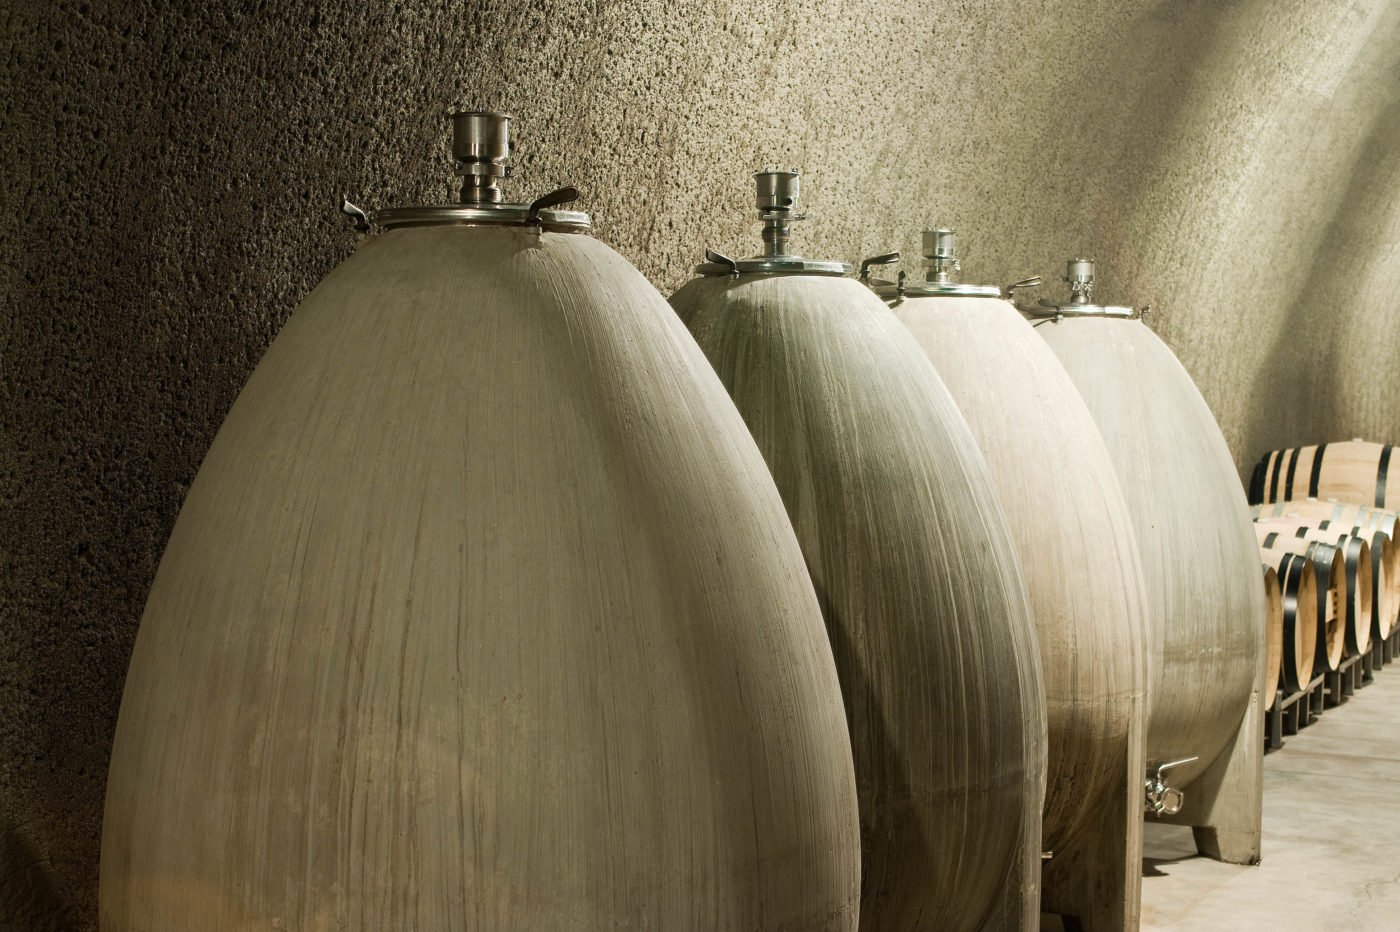 Concrete Egg Fermenting Tanks at Cliff Lede Winery